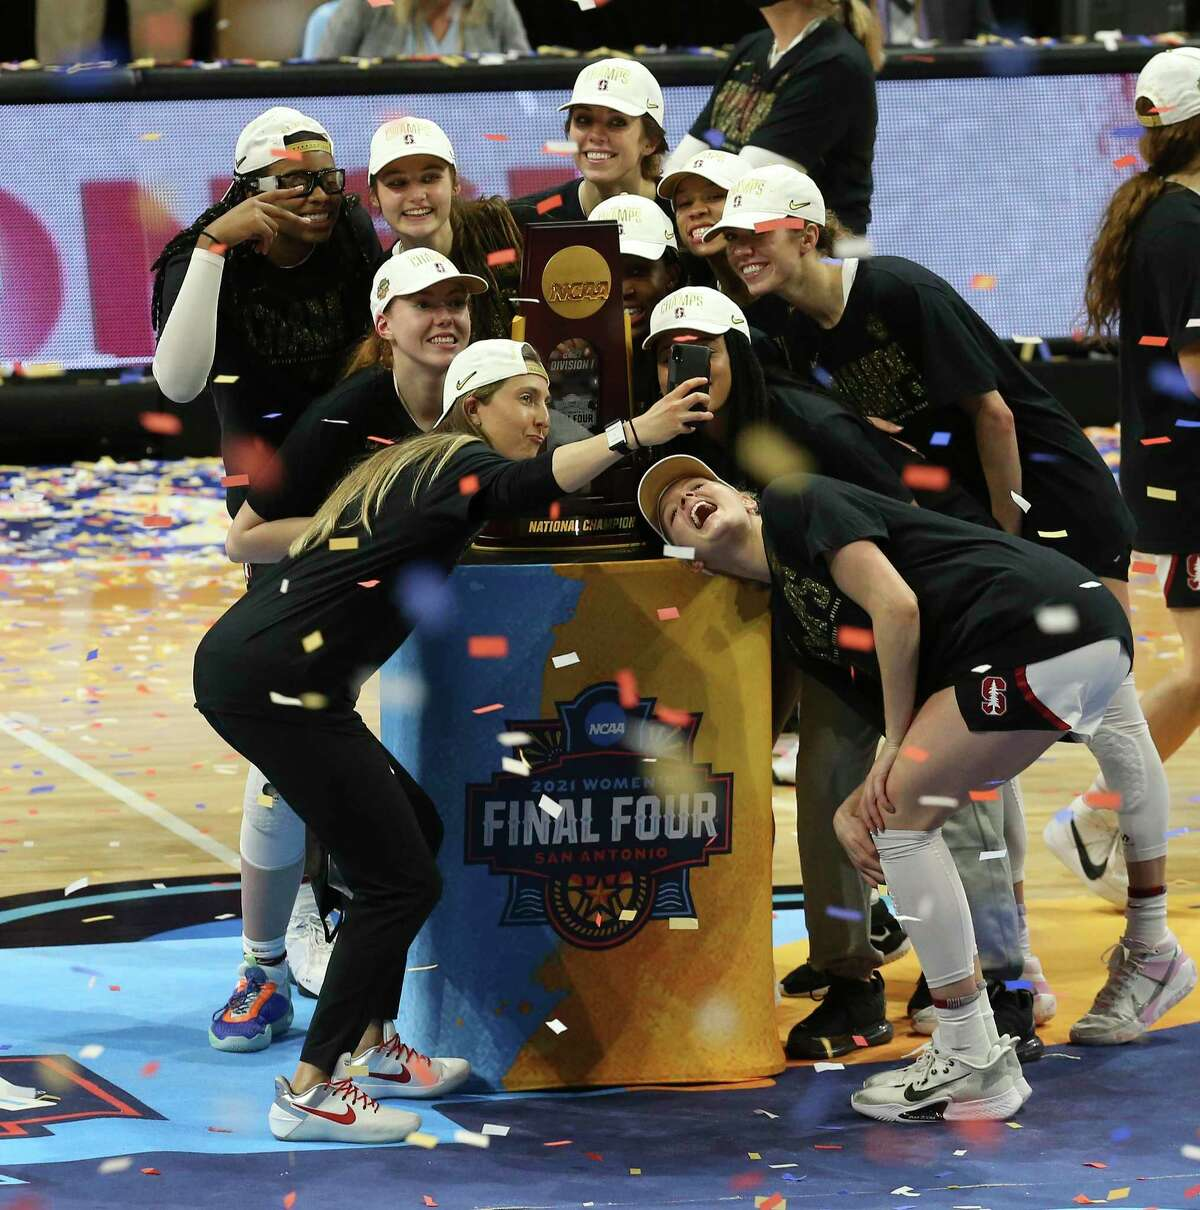 Stanford celebrates after defeating Arizona for the 2021 NCAA Women's Final Four National Champion basketball title at the Alamodome on Sunday, Apr. 4, 2021. Stanford won, 54-53.